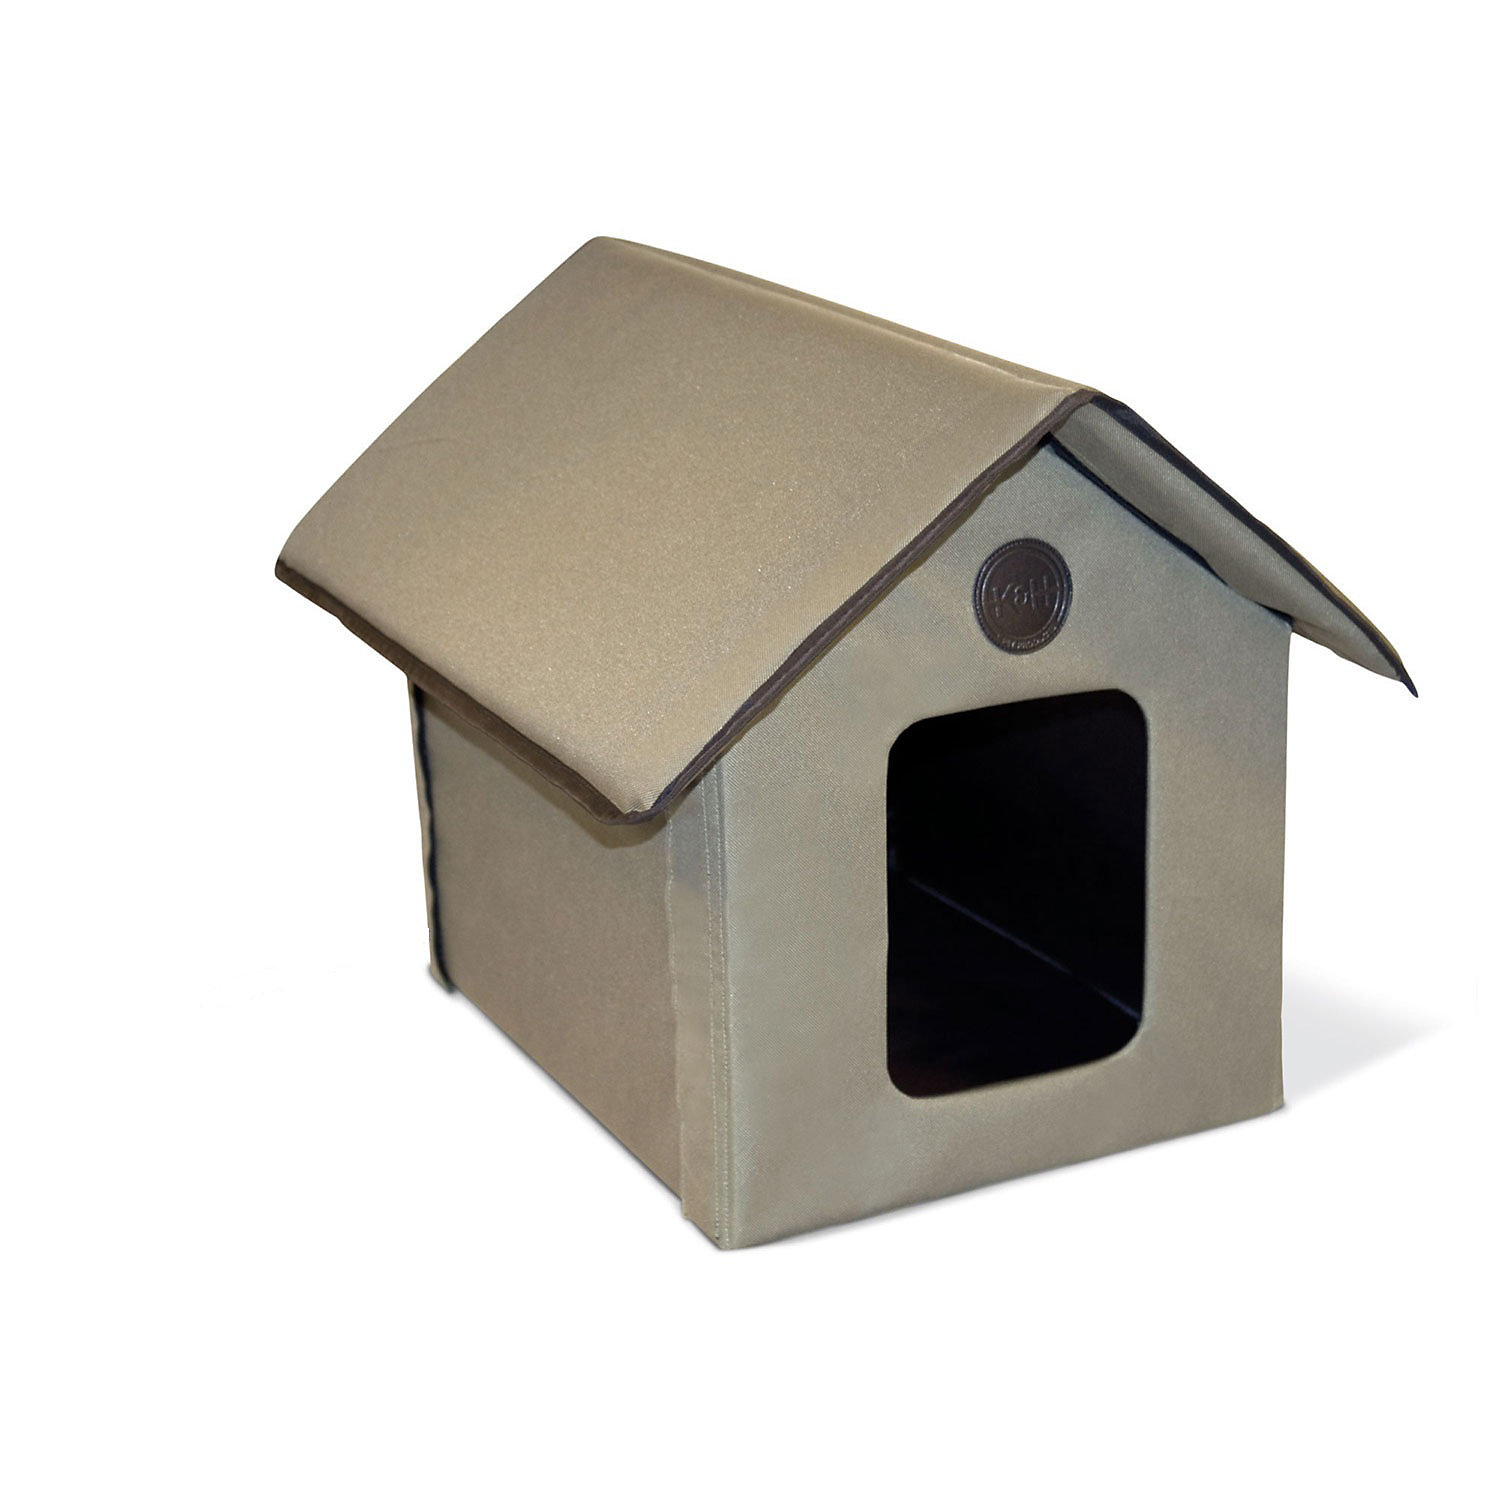 KH Outdoor Kitty Cat House in Olive Green